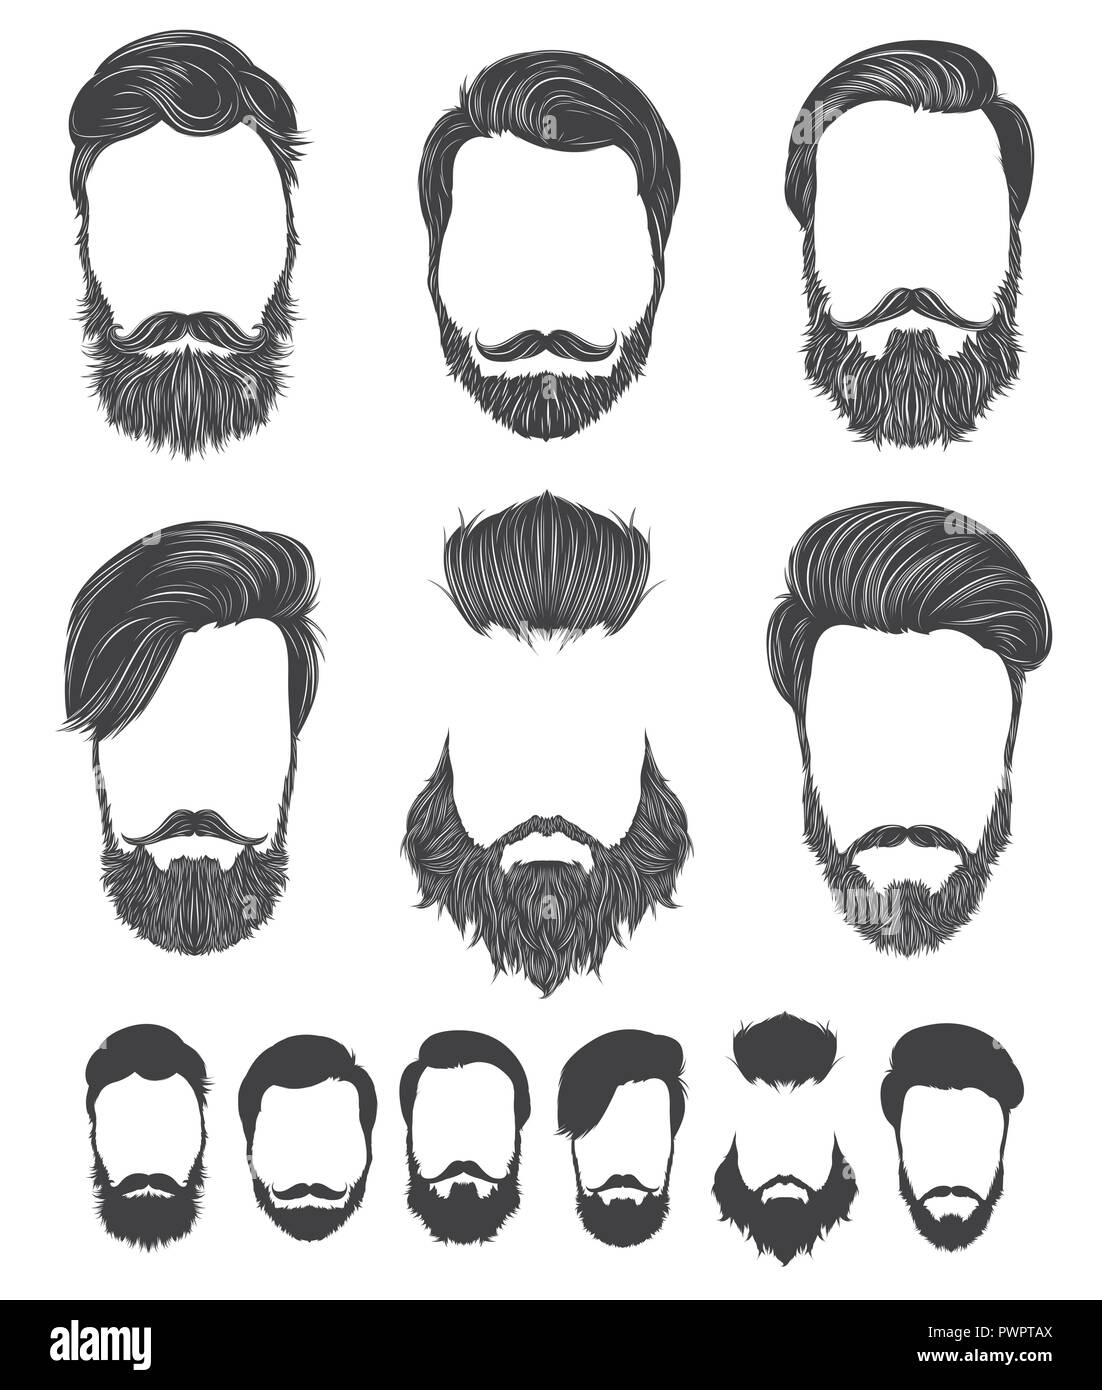 hairstyle and beard hipster fashion set vector illustrations